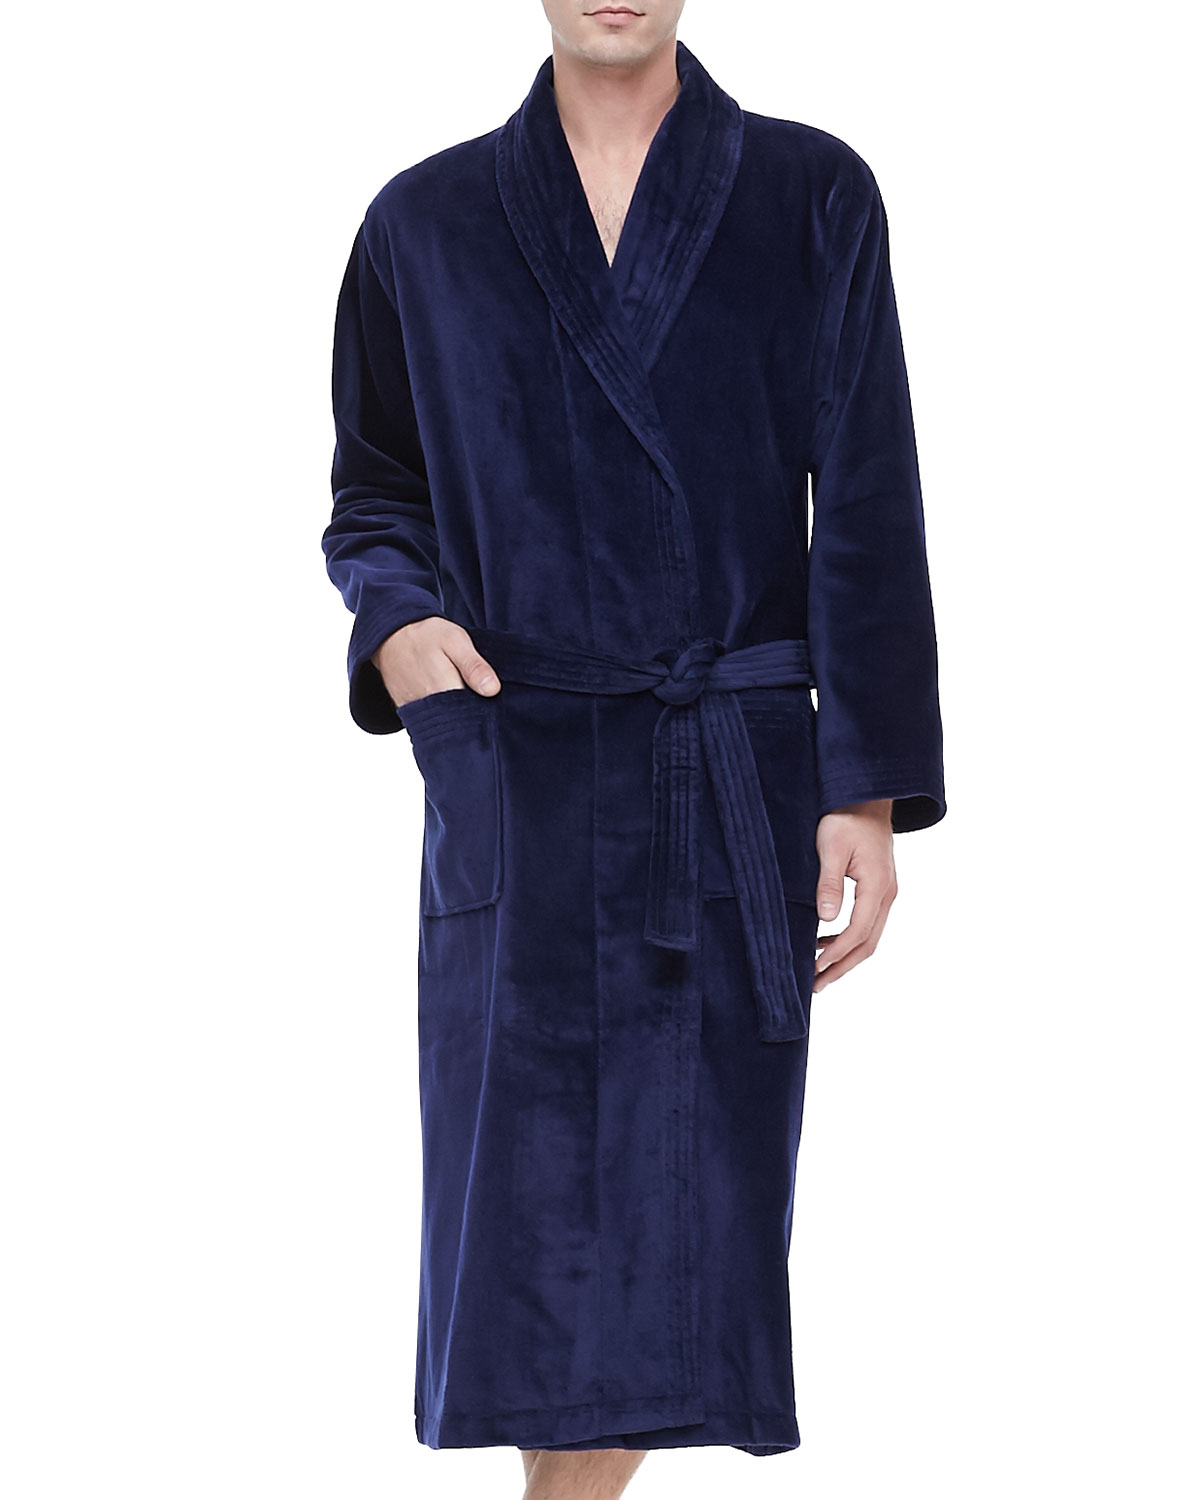 2019 best sell select for official utterly stylish Terry Cloth Robe, Navy